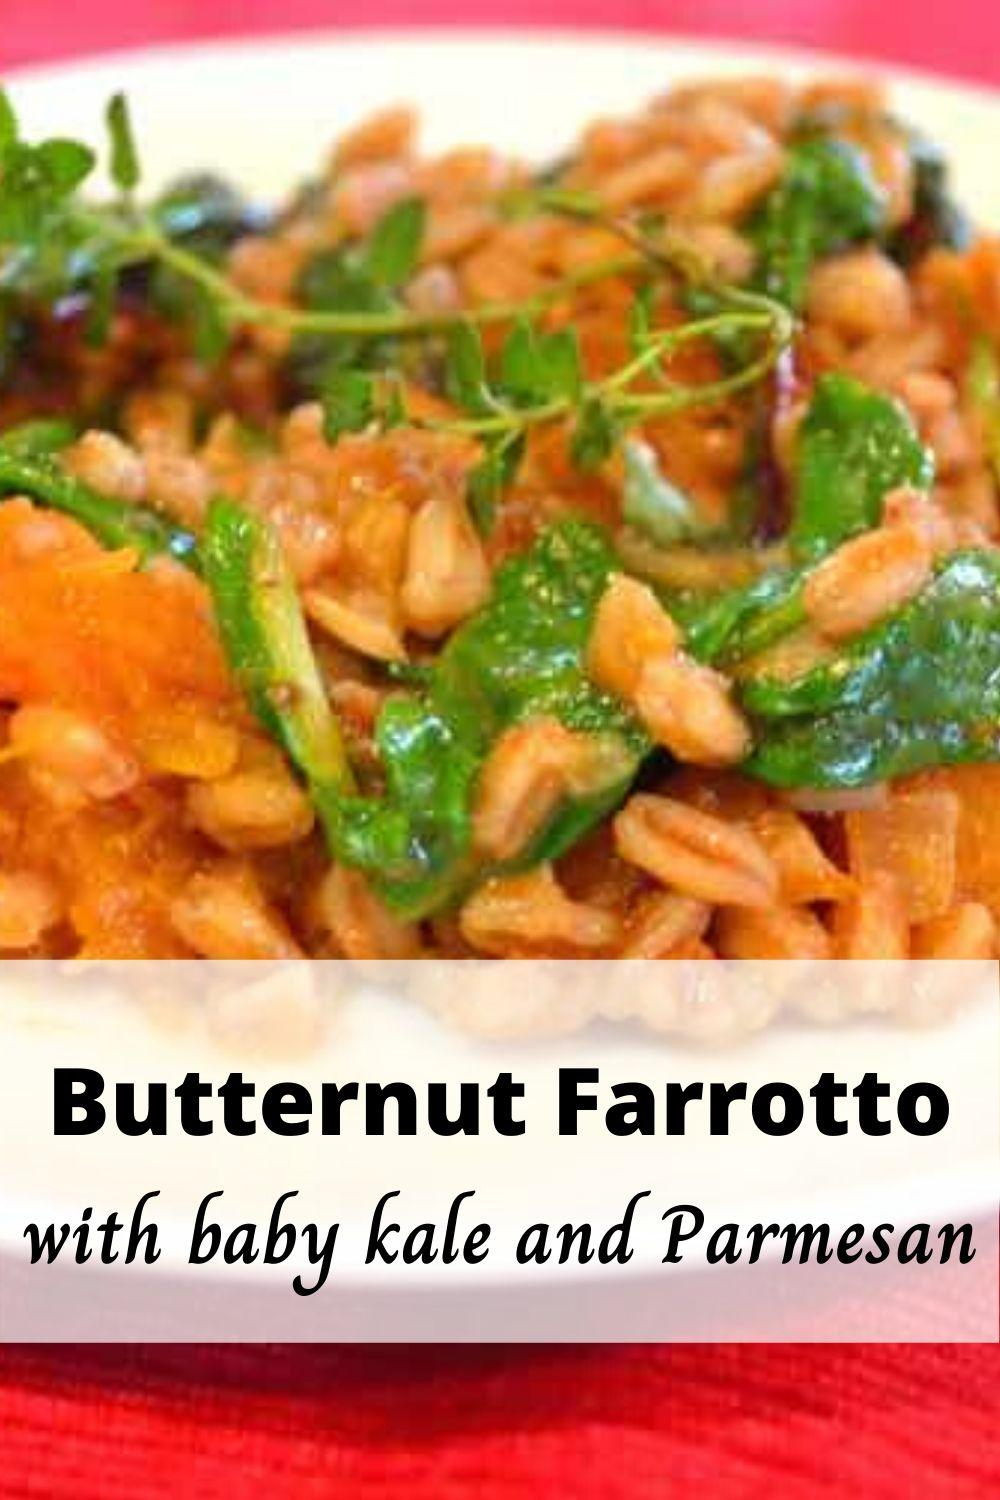 Farro Risotto Recipe with Butternut and Baby Kale